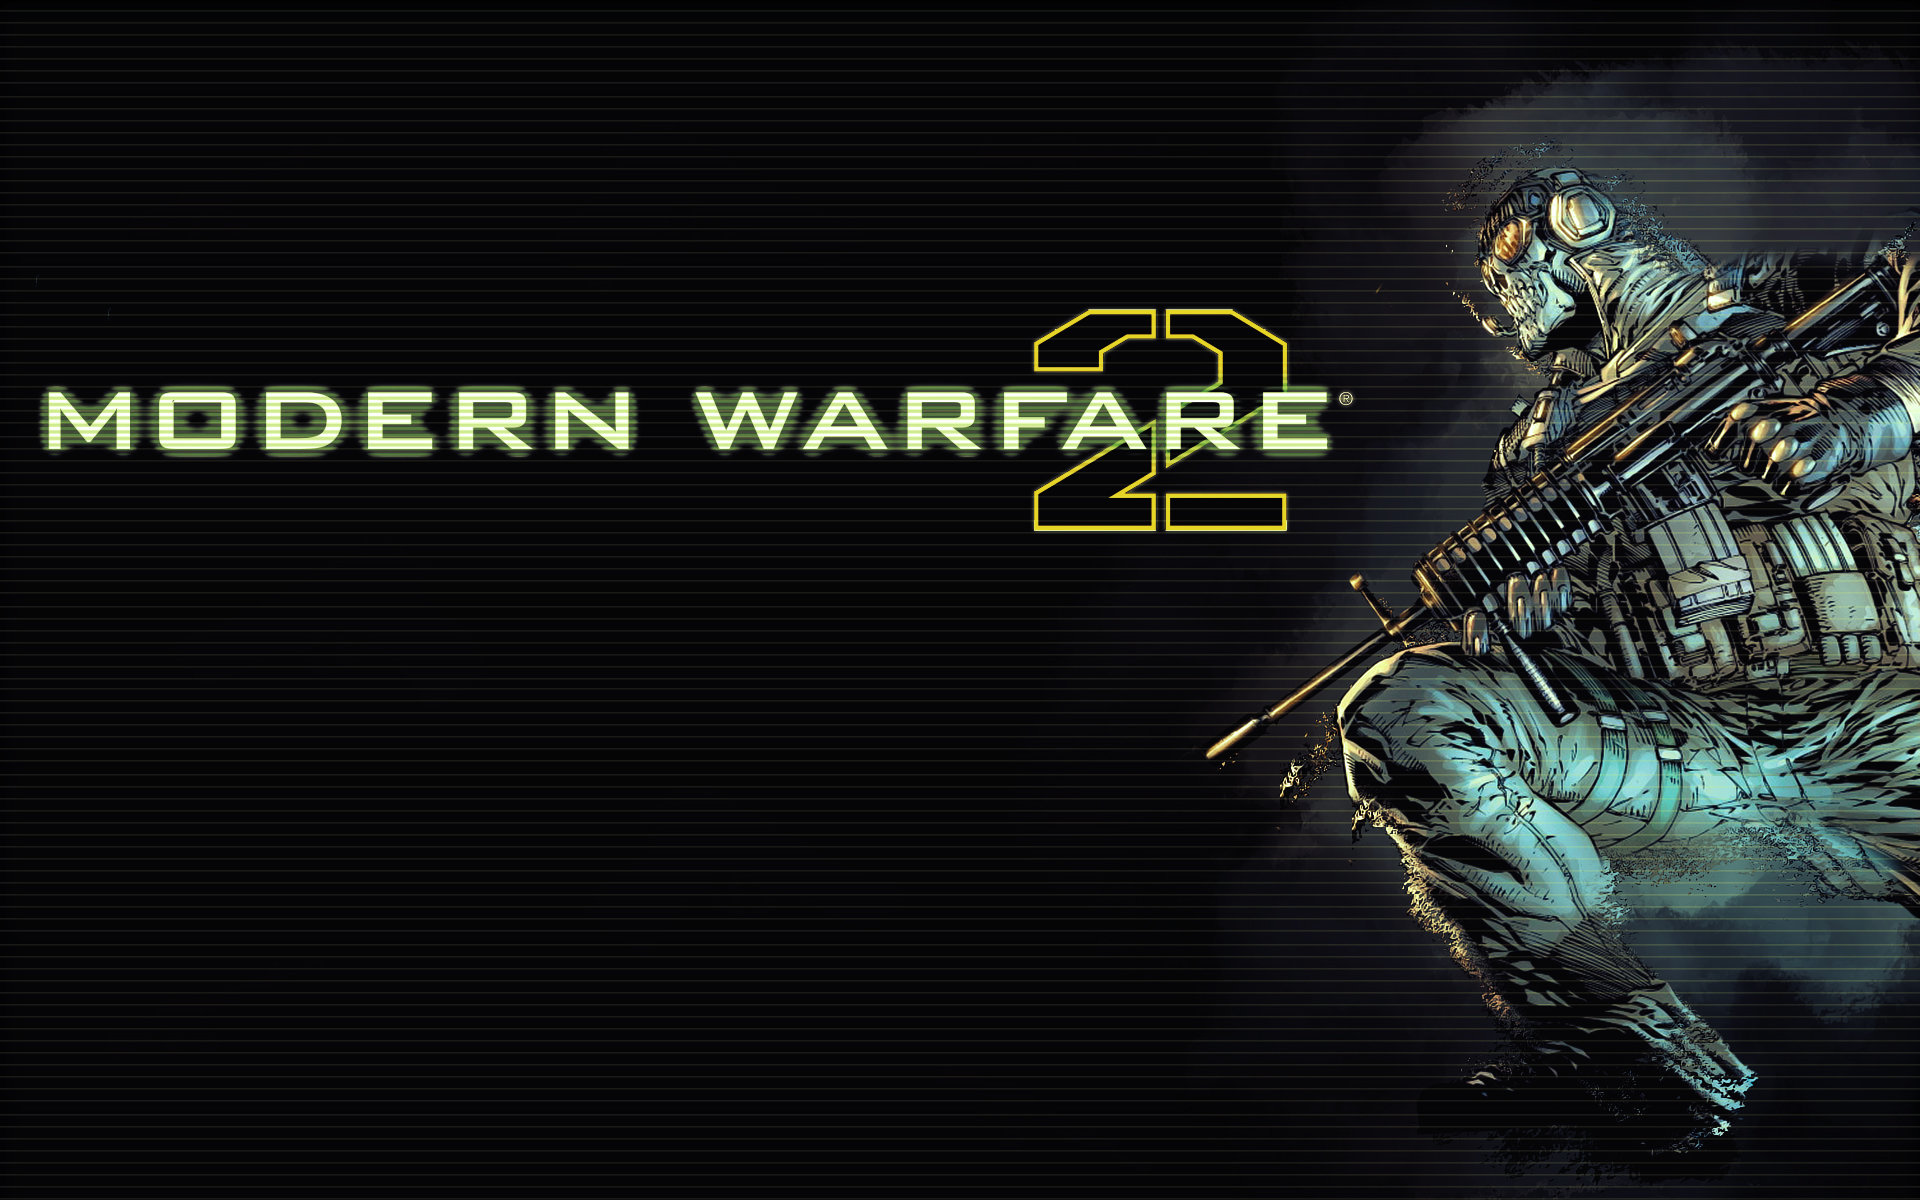 High resolution Call Of Duty: Modern Warfare 2 (MW2) hd 1920x1200 wallpaper ID:326492 for PC